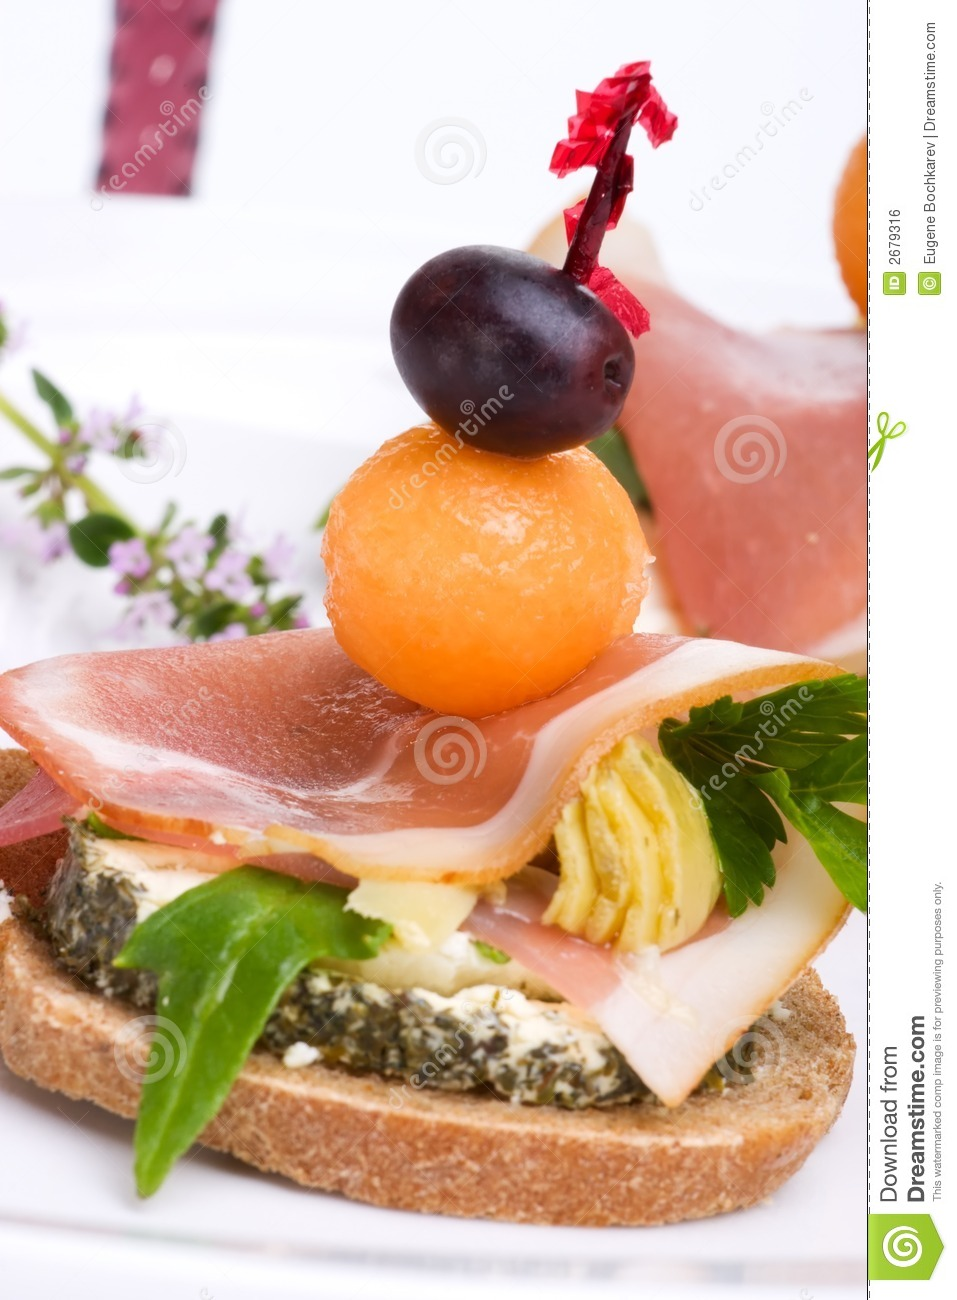 Prosciutto canapes royalty free stock image image 2679316 for Prosciutto and melon canape